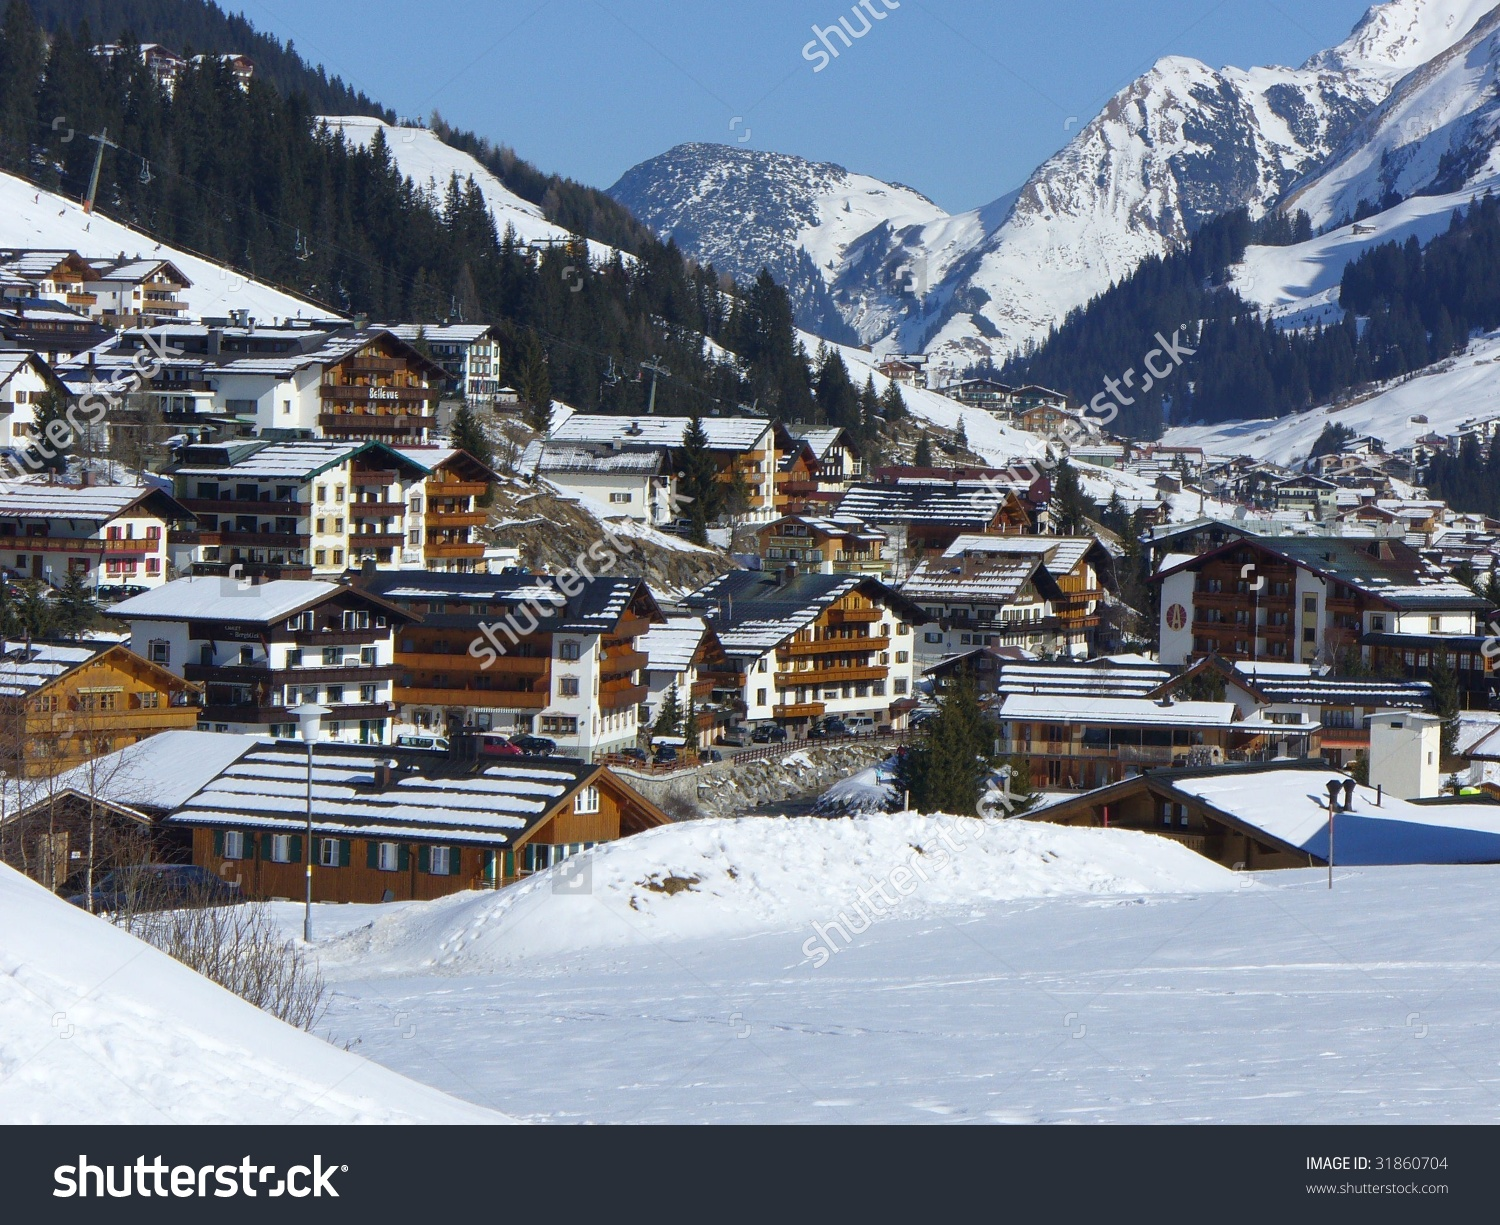 Village Lech Austria Stock Photo 31860704.